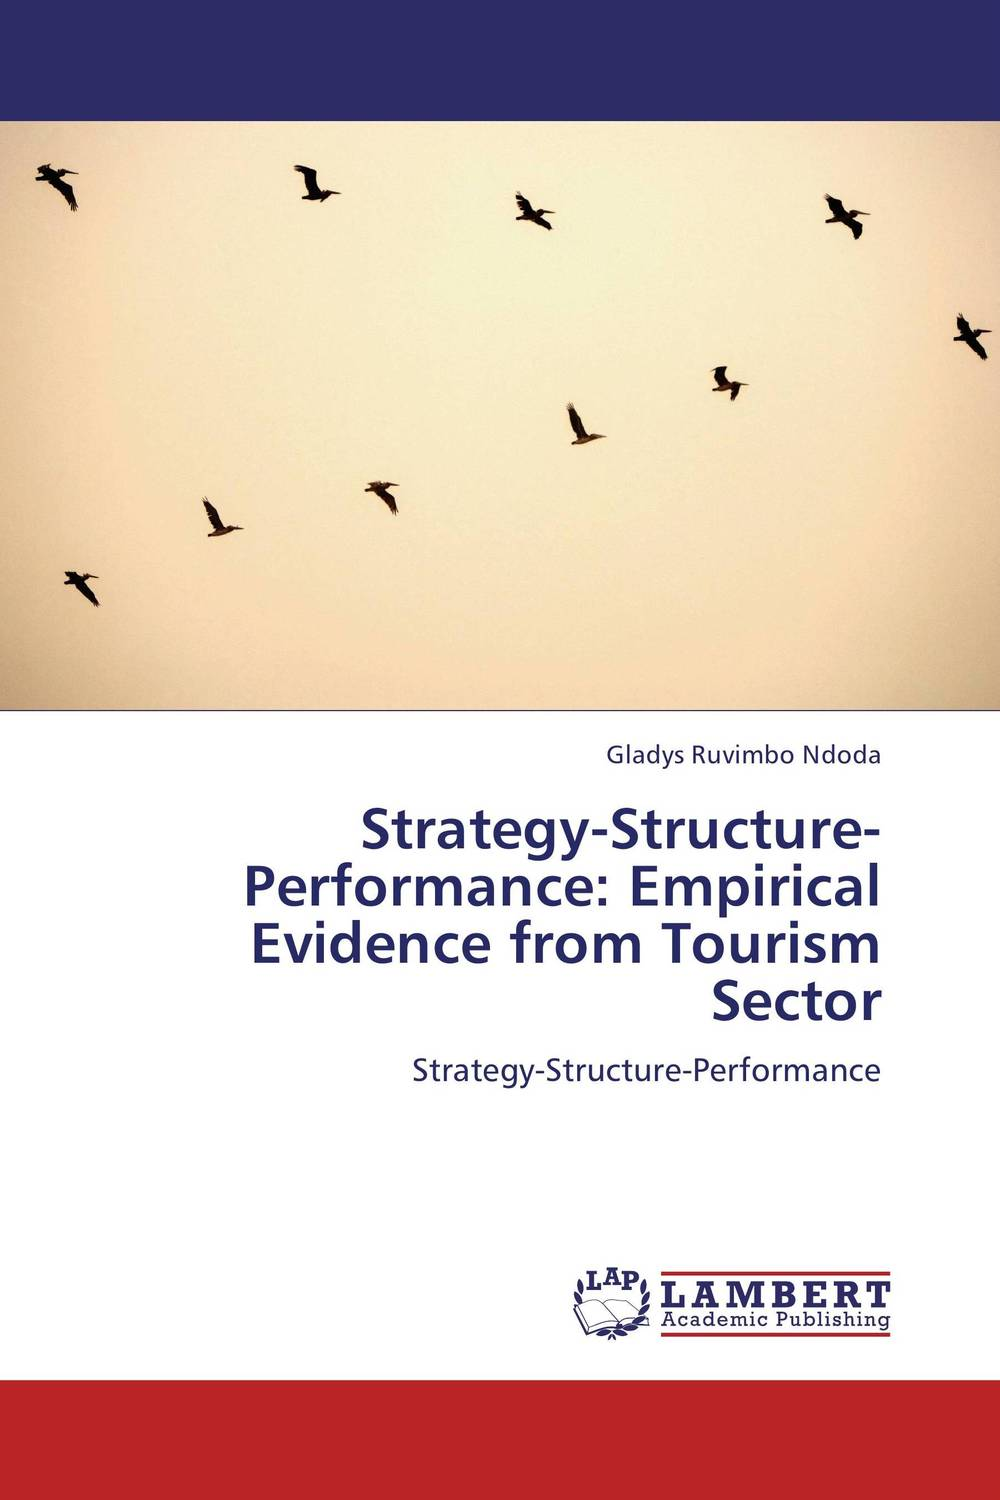 Strategy-Structure-Performance: Empirical Evidence from Tourism Sector